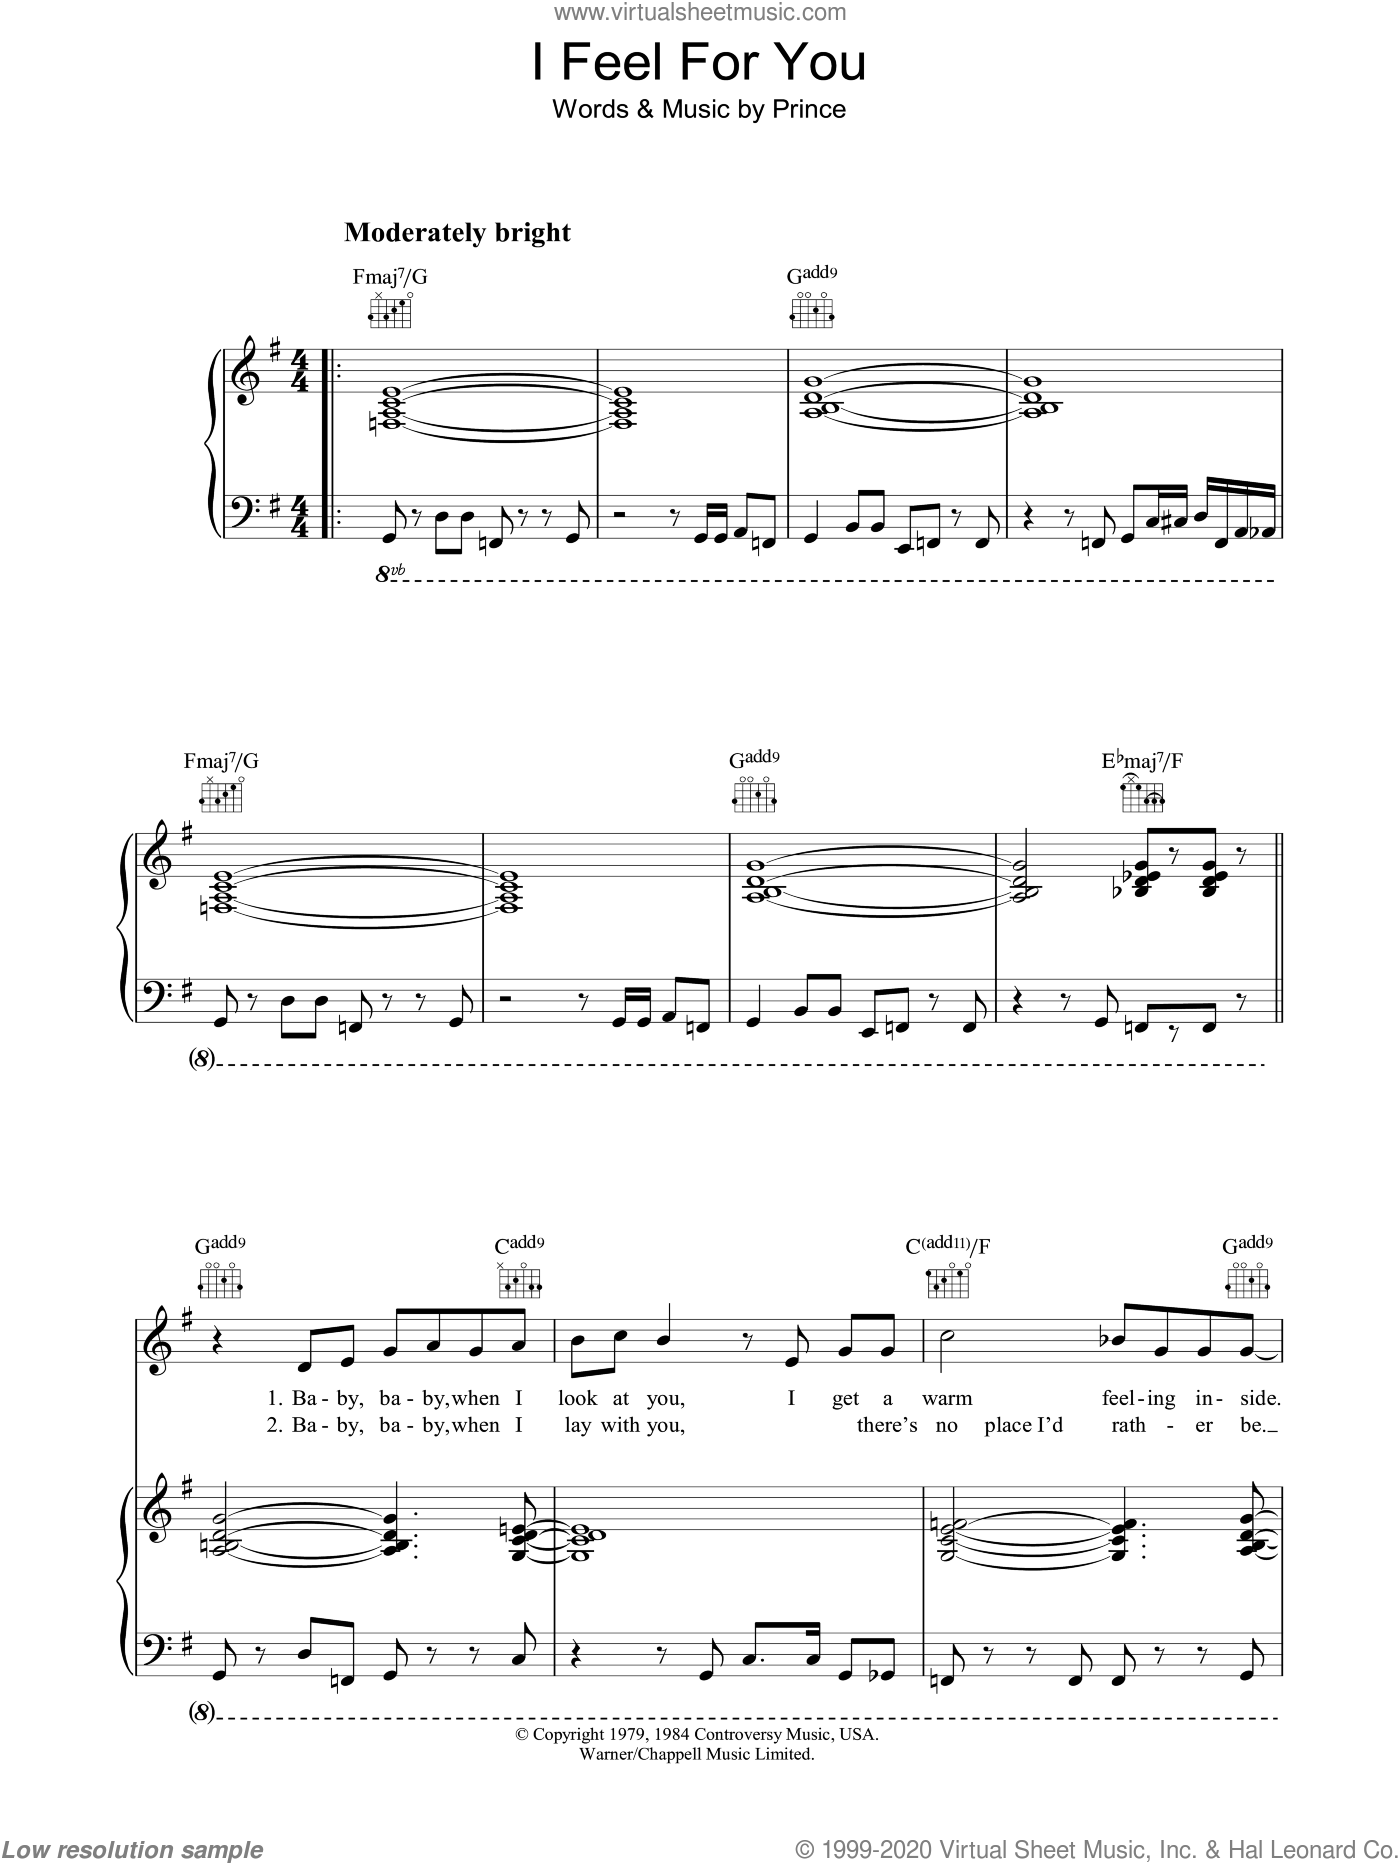 I Feel For You sheet music for voice, piano or guitar by Prince. Score Image Preview.